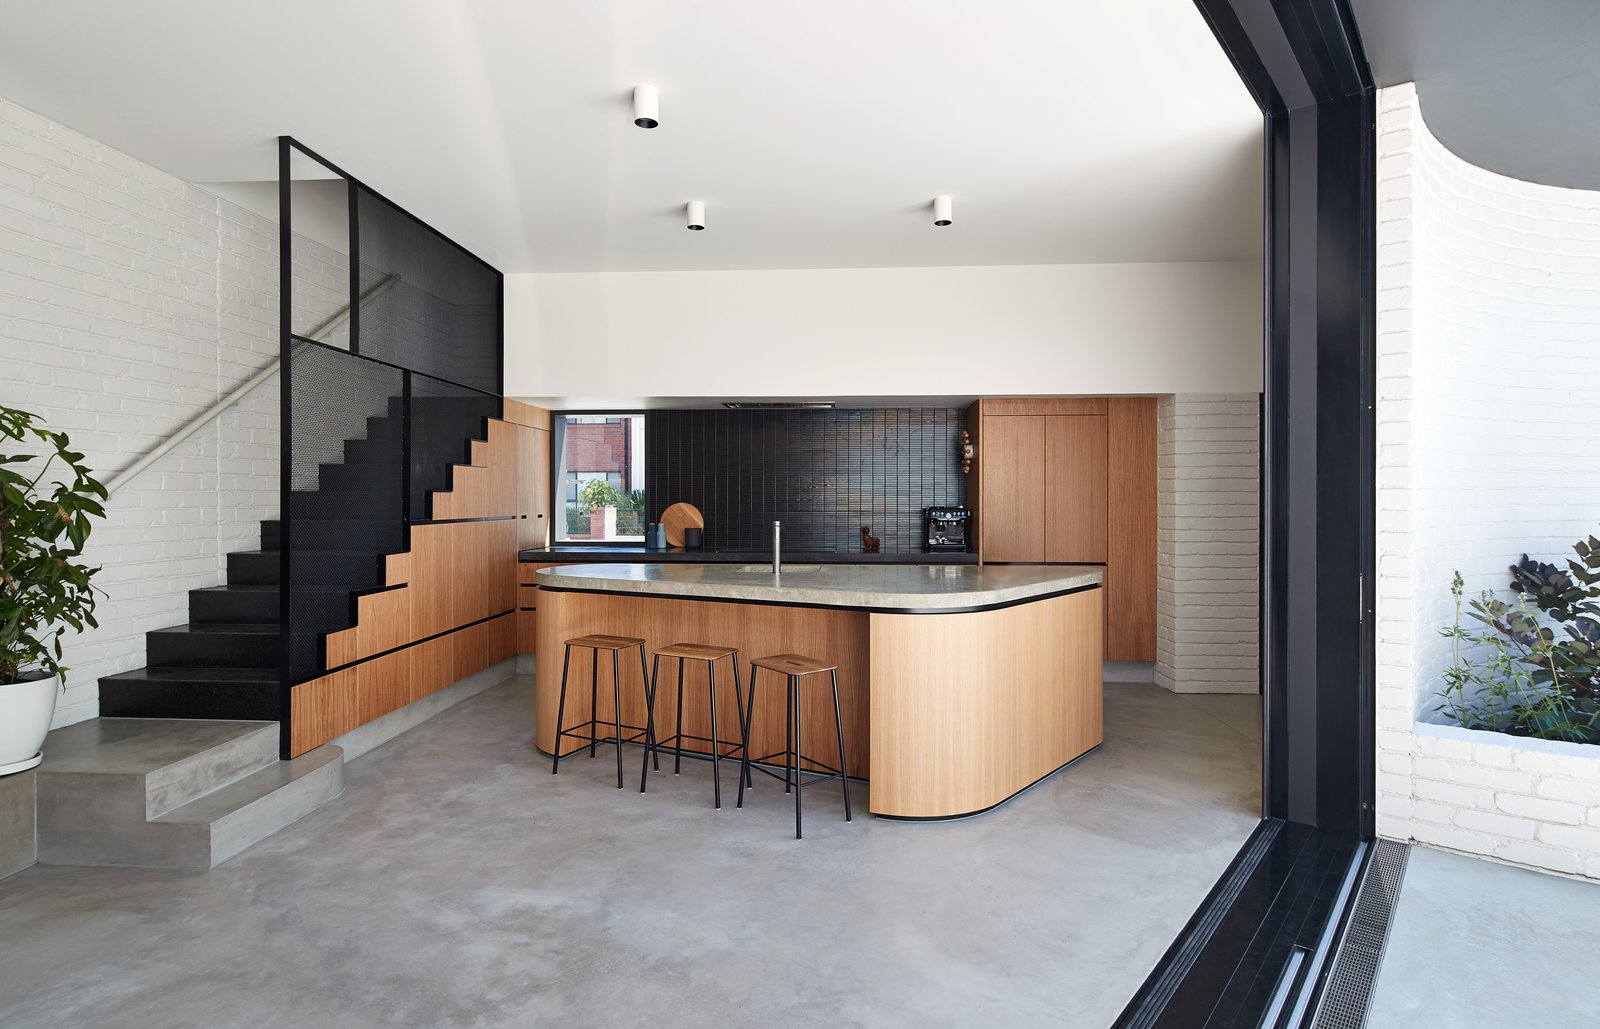 Kitchen, Undermount Sink, Concrete Counter, Ceiling Lighting, Concrete Backsplashe, Concrete Floor, Refrigerator, and Wood Cabinet In the new kitchen, oak timber veneer joinery unites concrete floors and counters.  Photos from An Australian Home's Brick Addition Creates a Private Backyard Haven